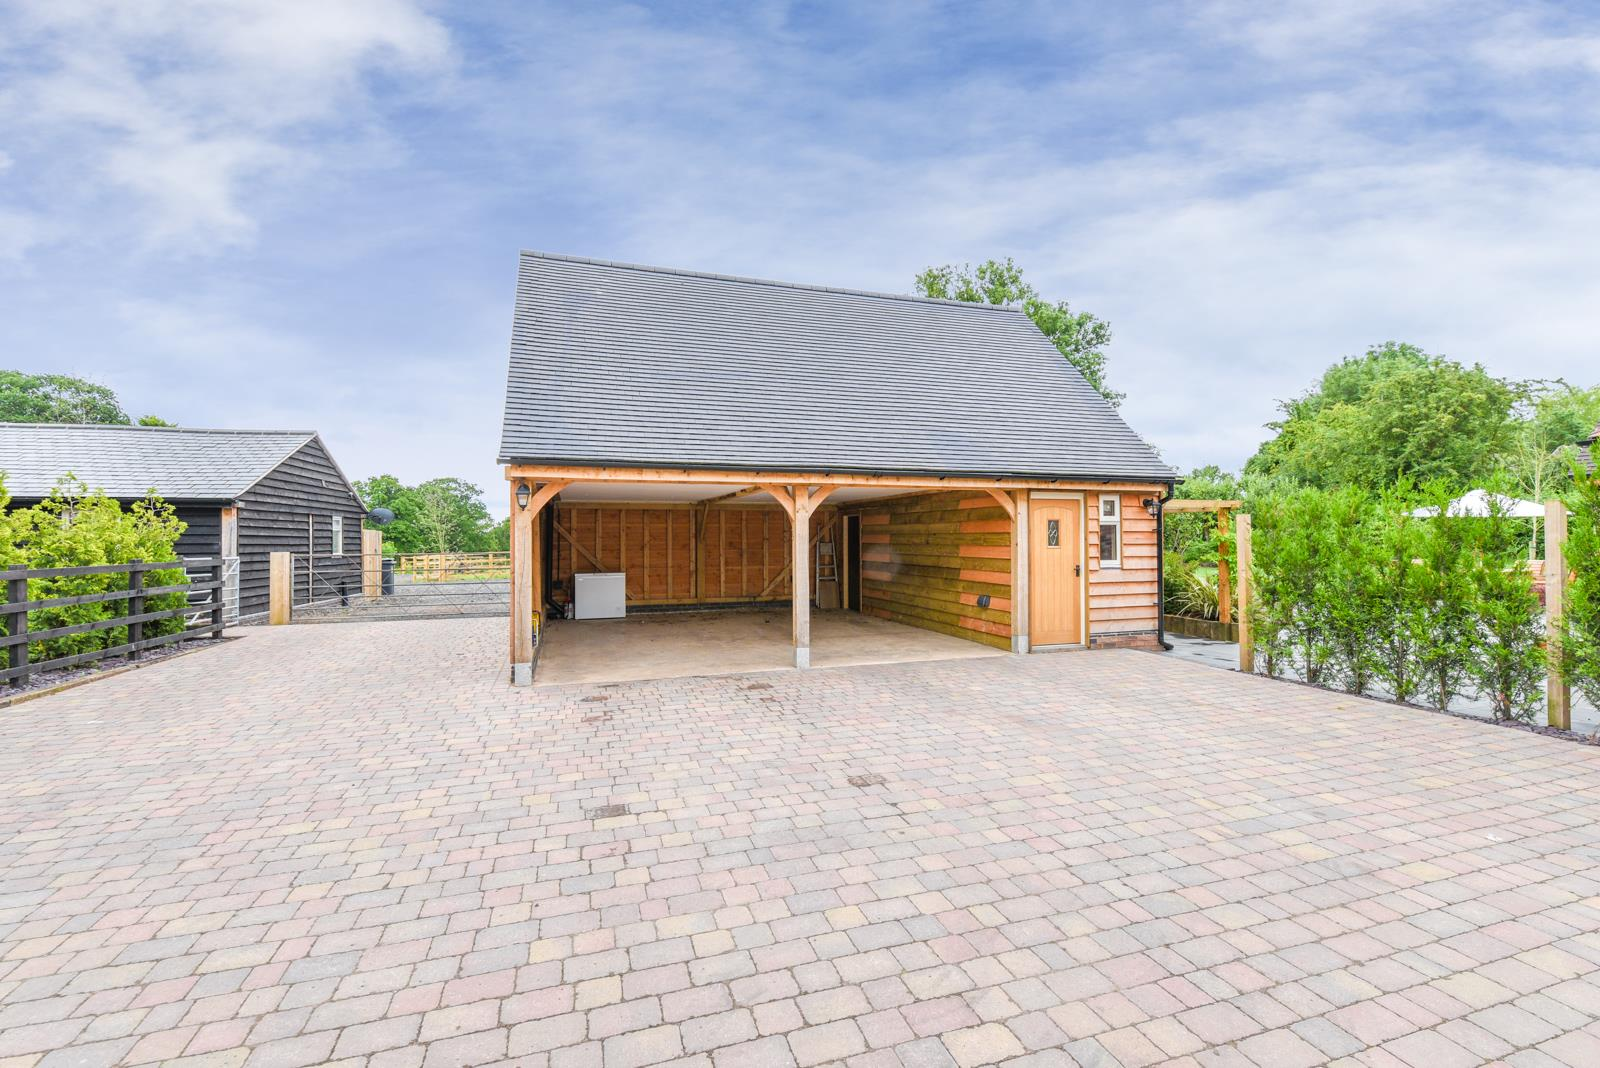 Timber Framed Car Port with Studio Apartment Above